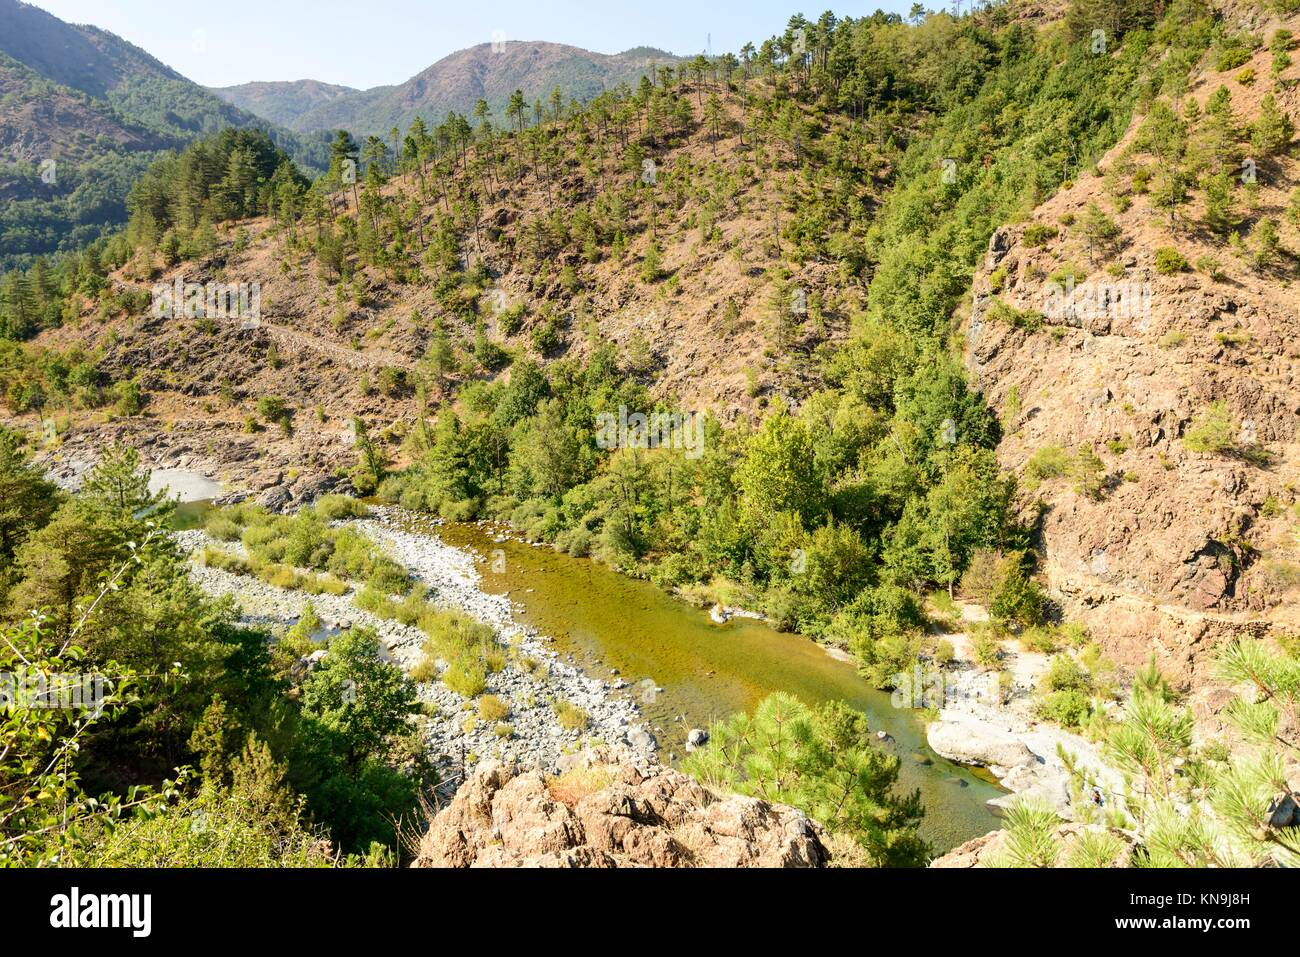 landscape with the clear waters of Orba river flowing in deep gorge in Ligure inland near Tiglieto, Italy. - Stock Image